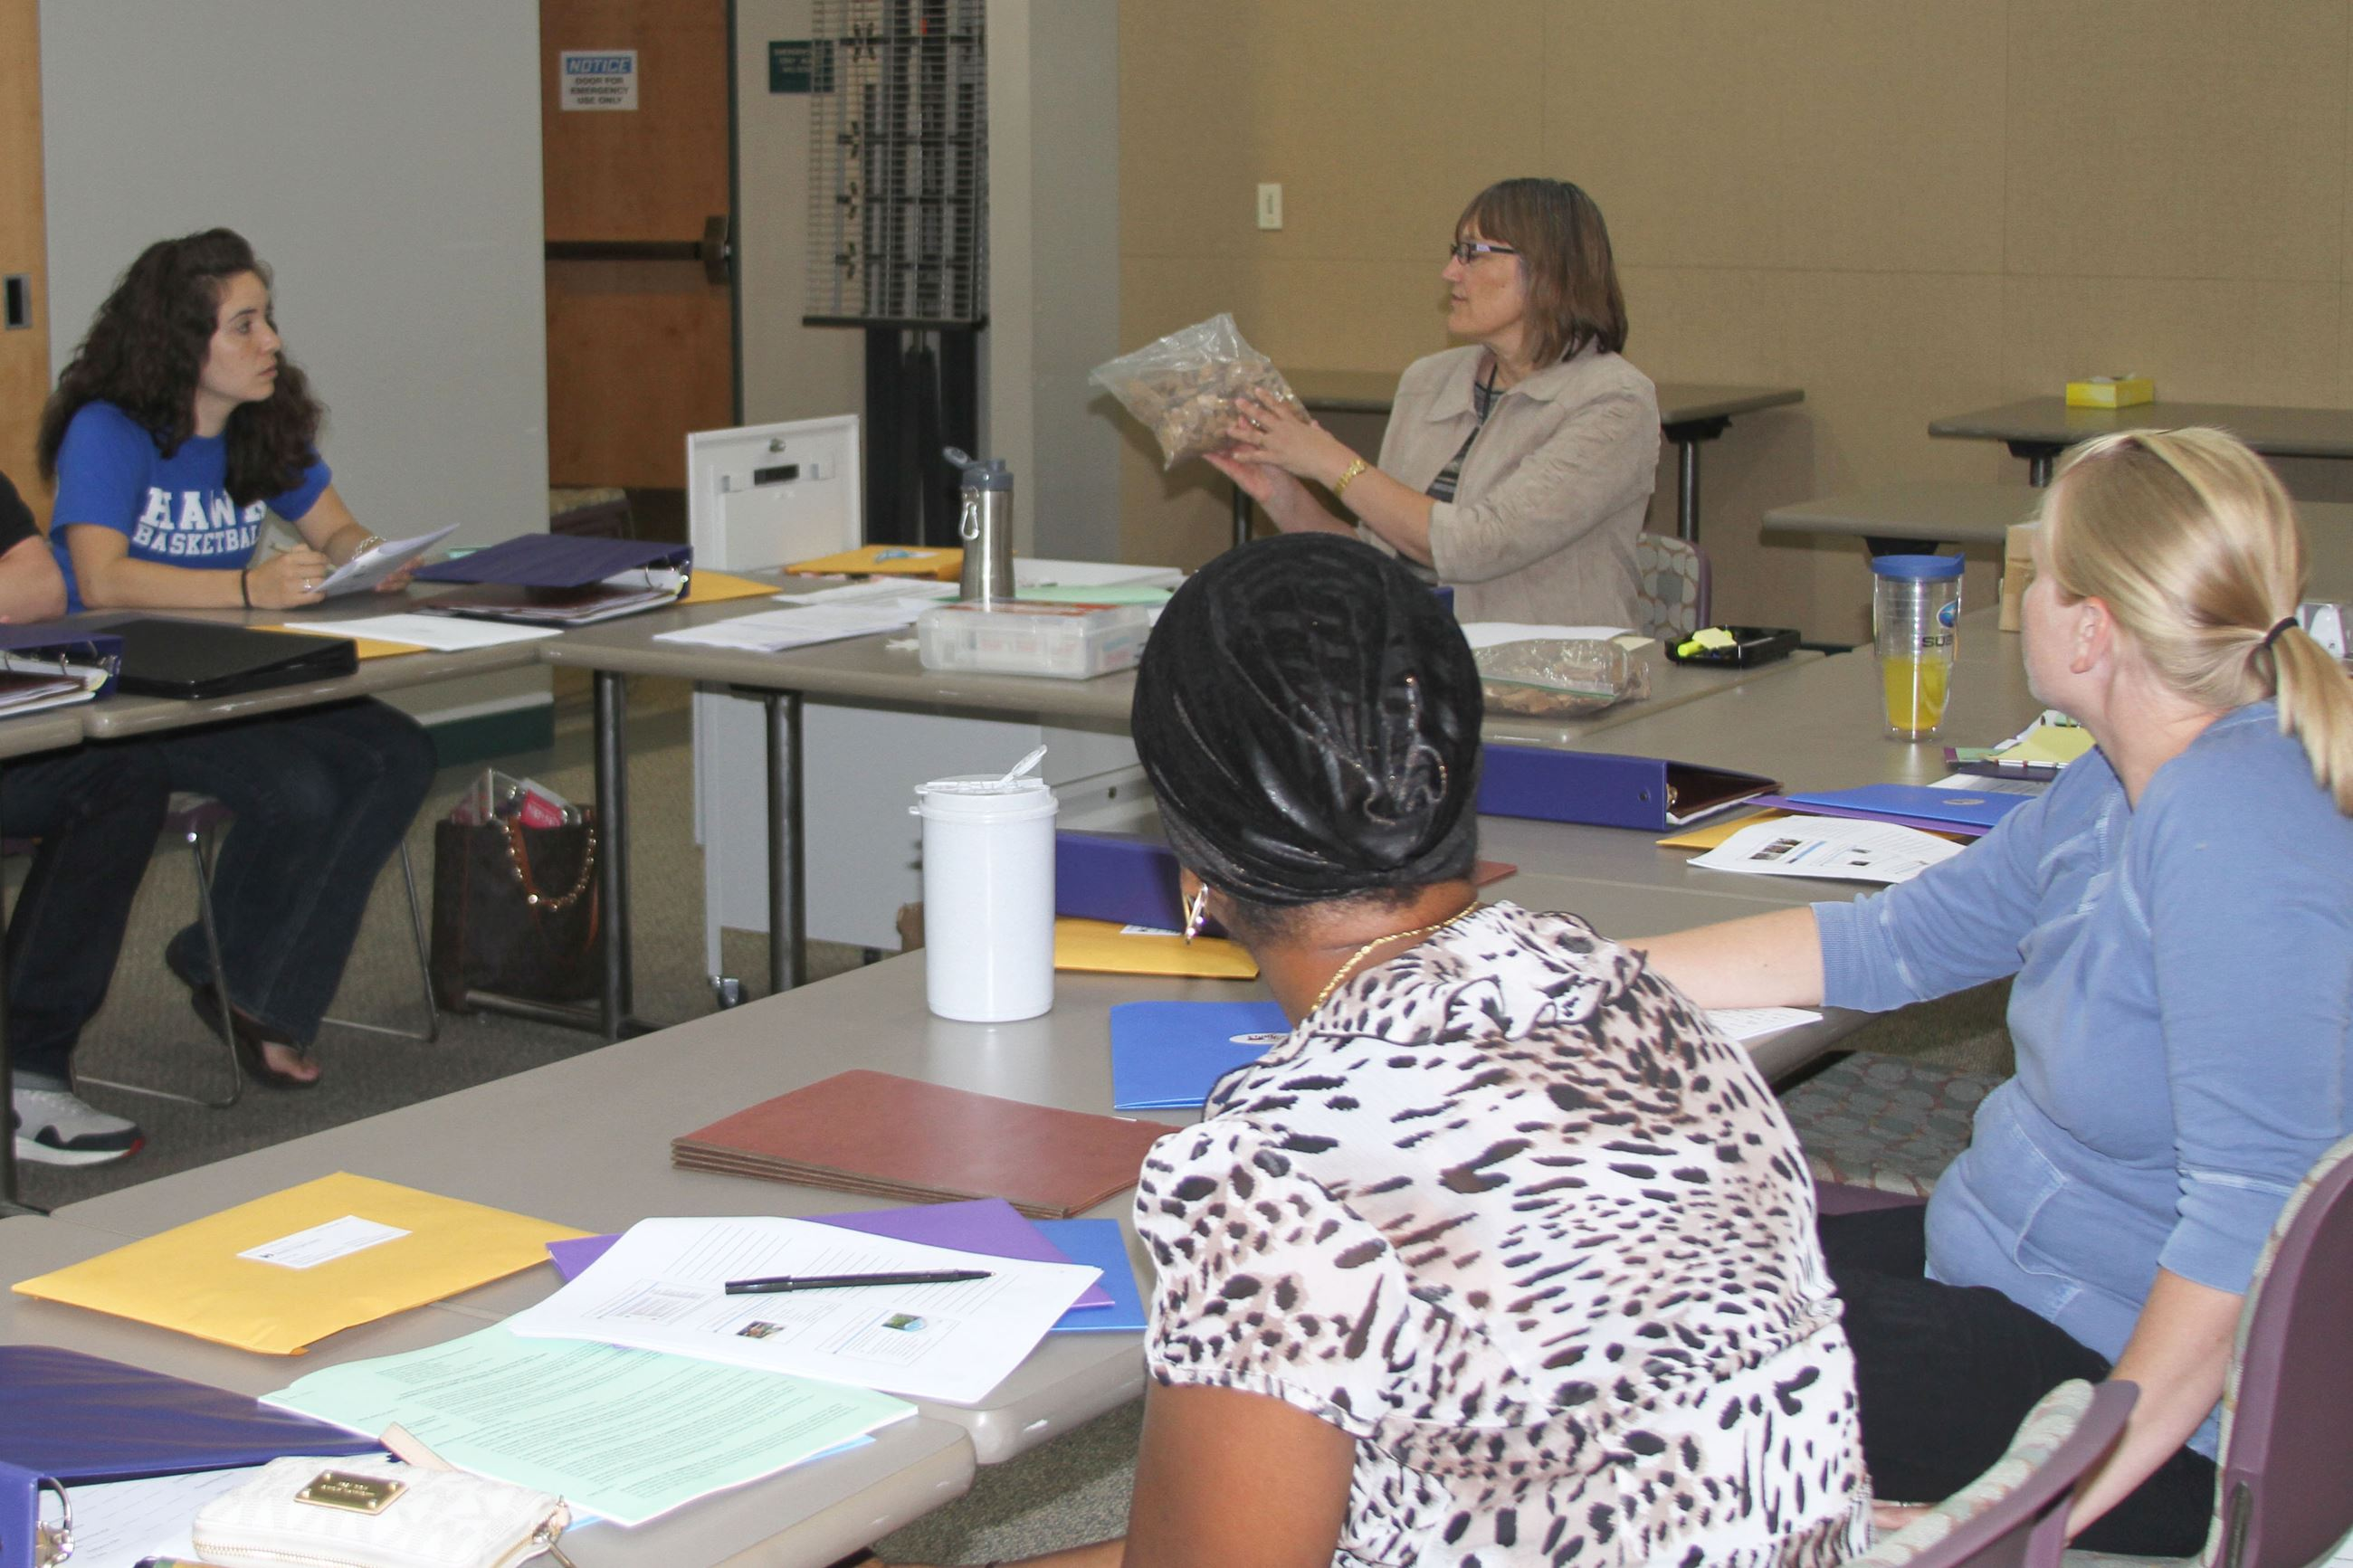 Home child care provider orientation training